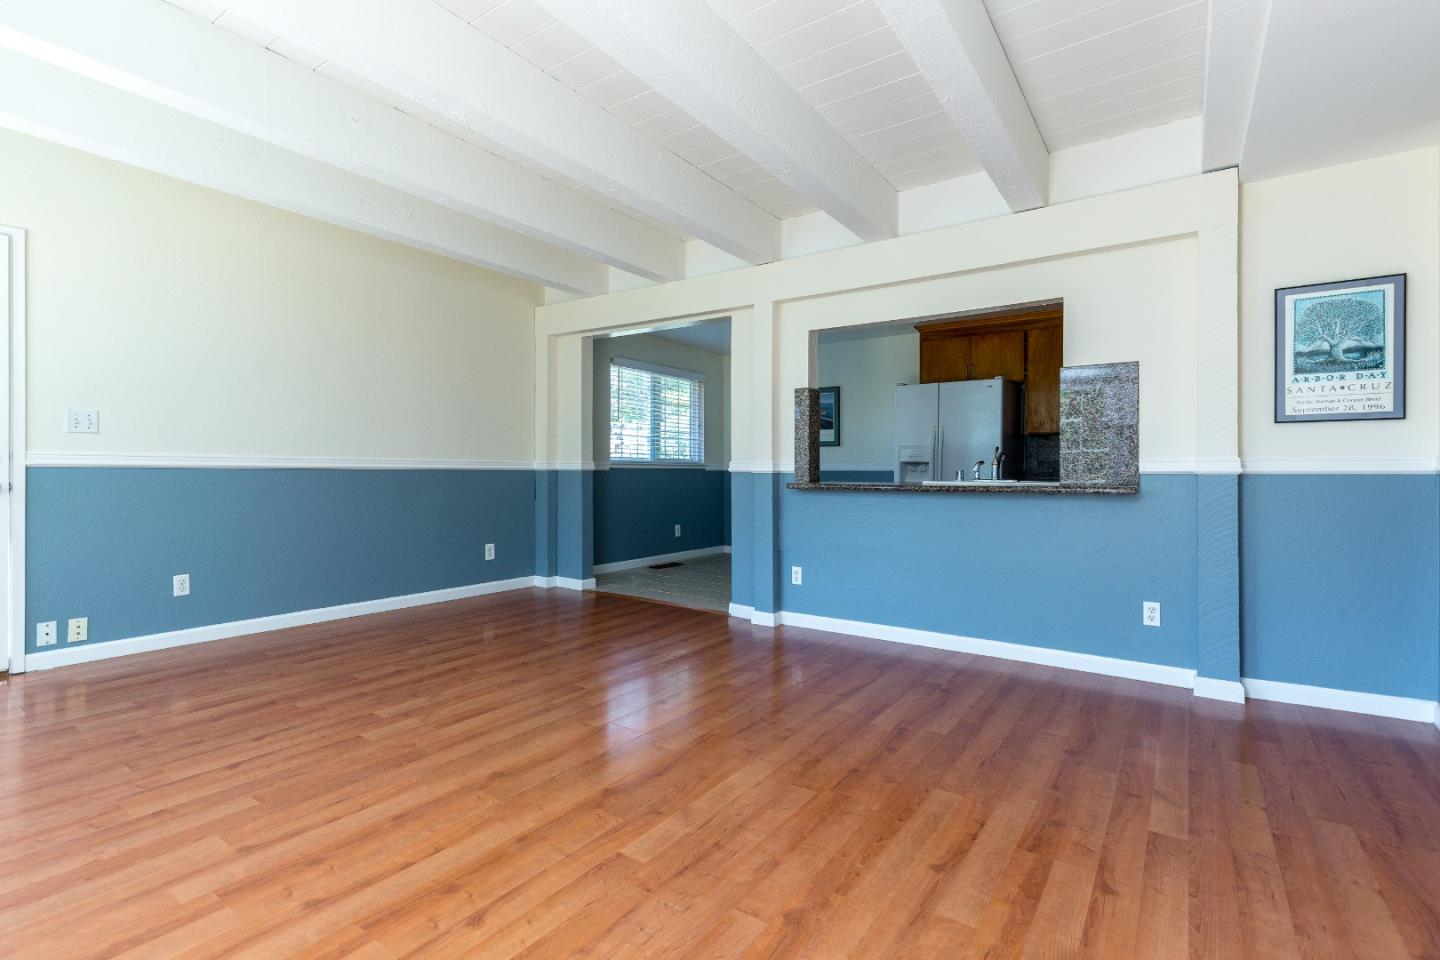 Scotts Valley CA Single Family Home with 5 bedrooms and 3 bathrooms